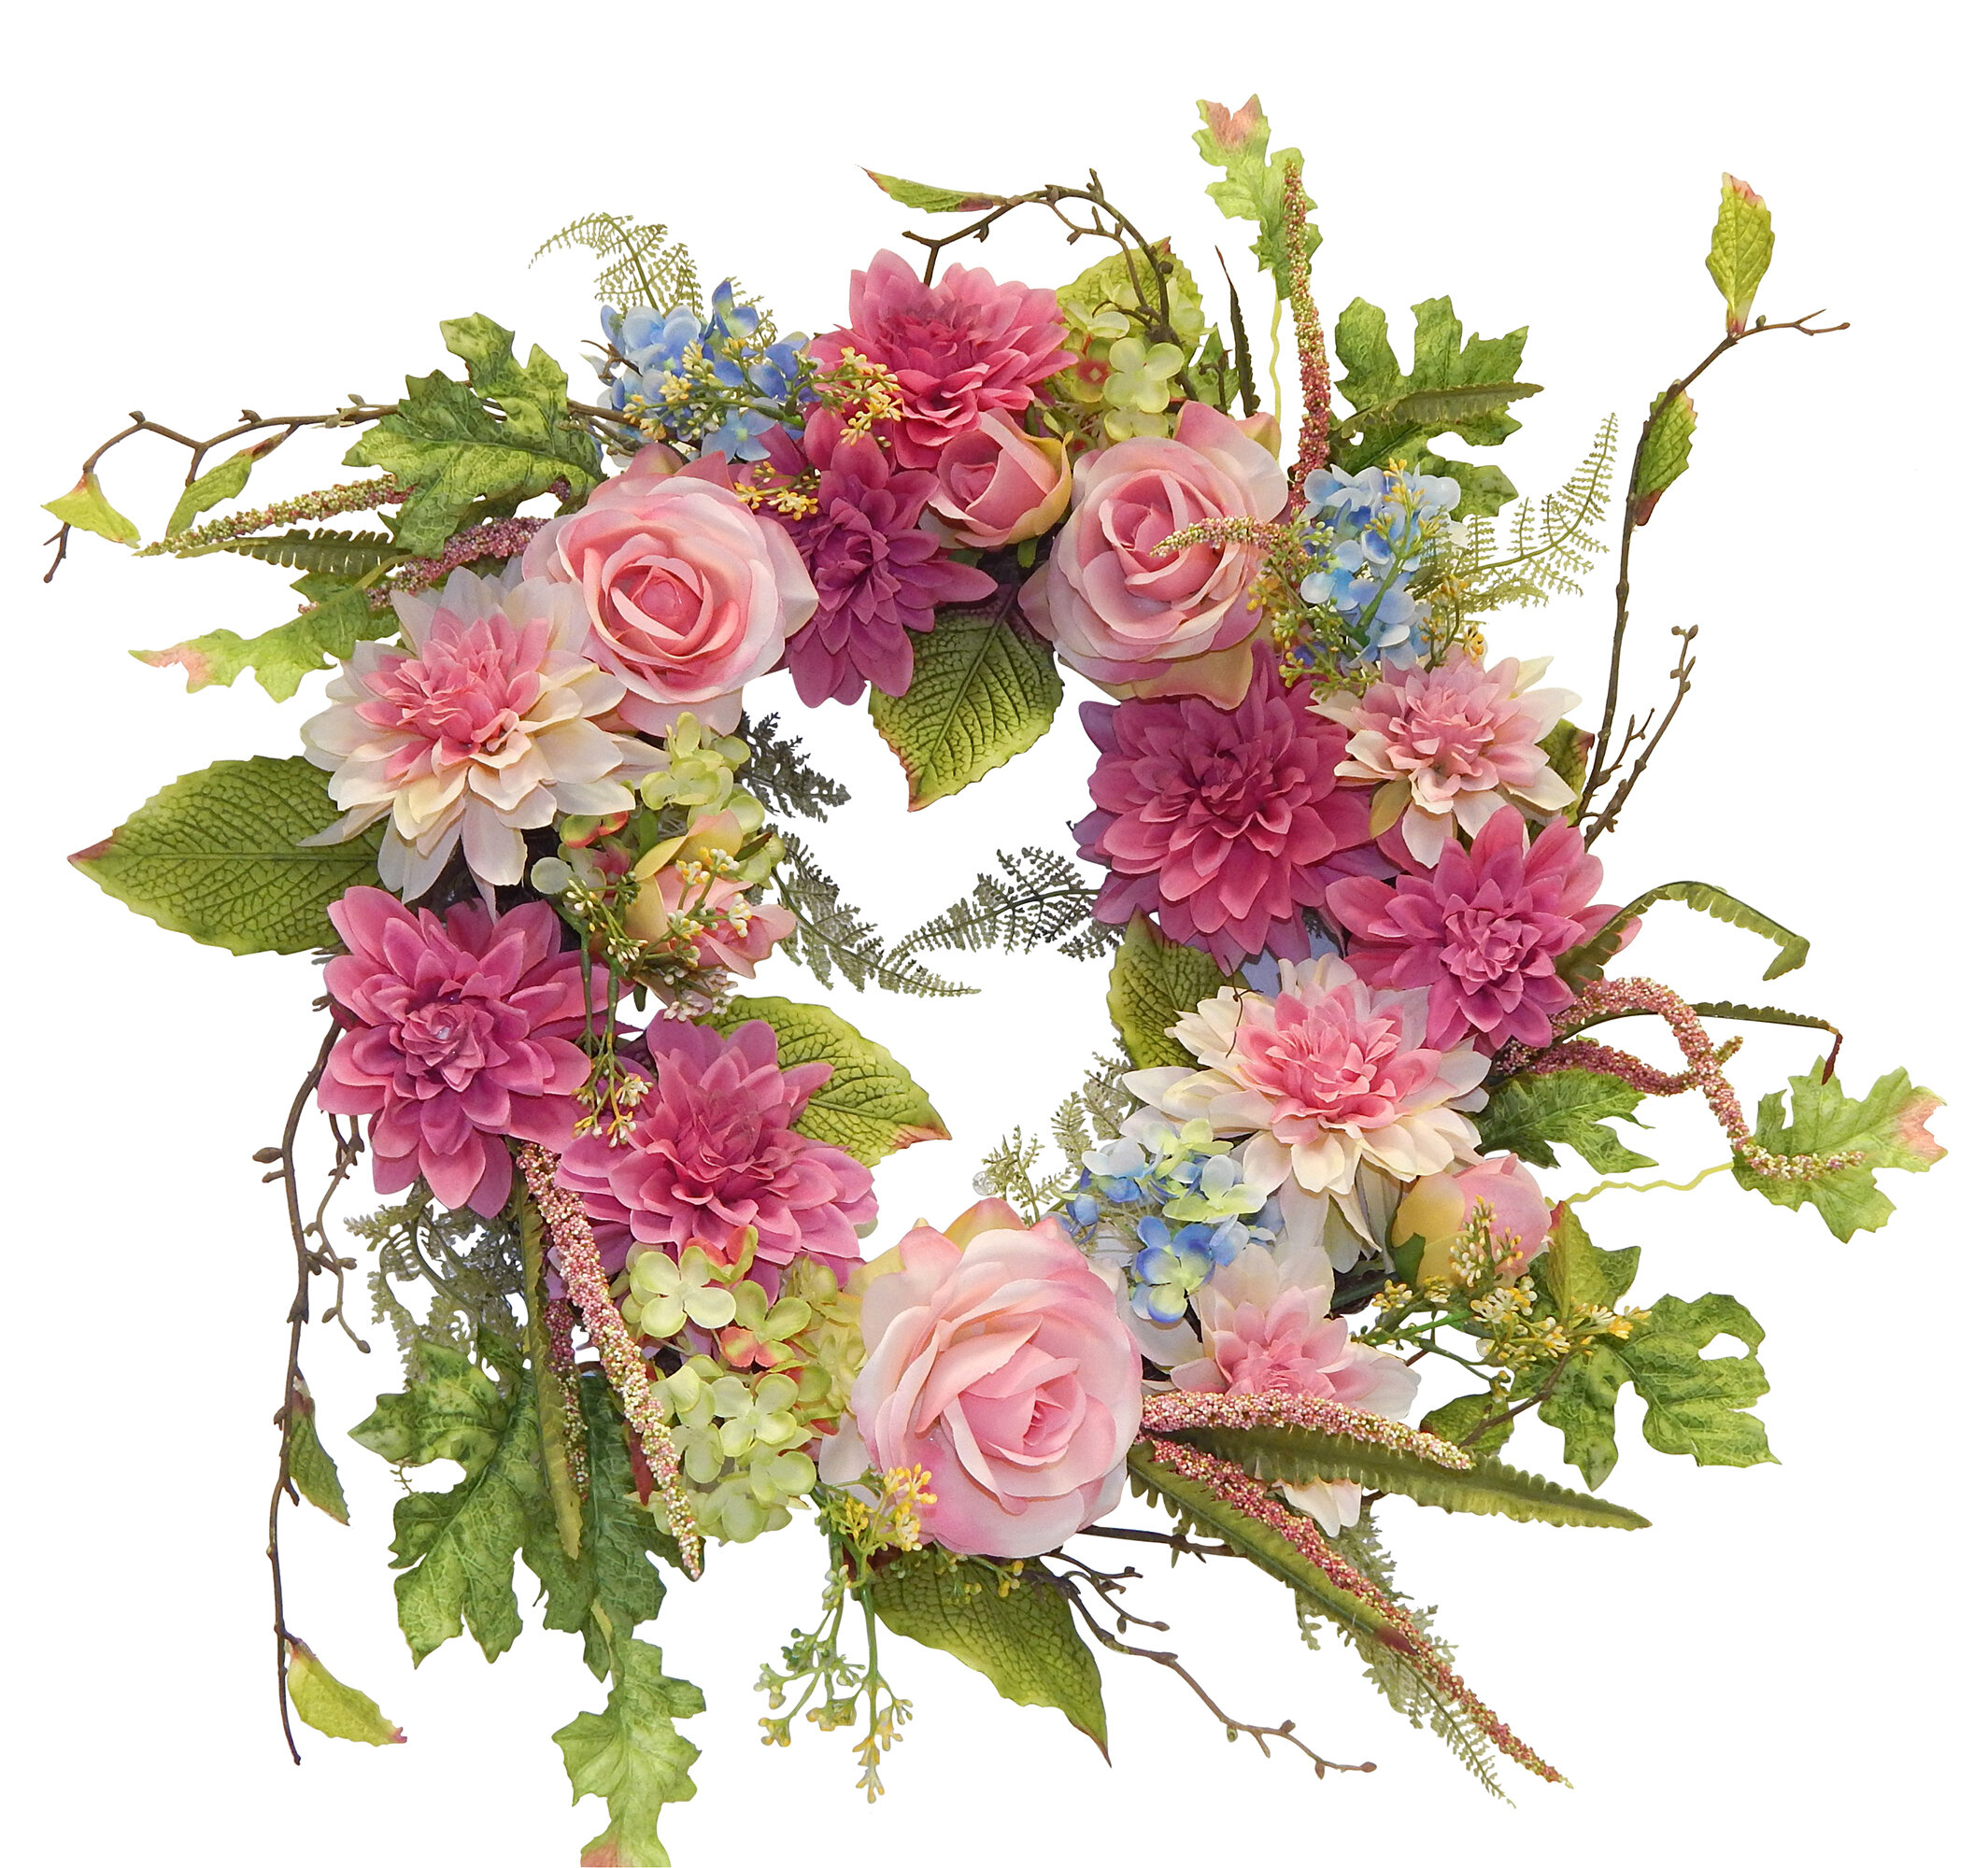 Wholesale Silk Flowers Tampa Migrant Resource Network